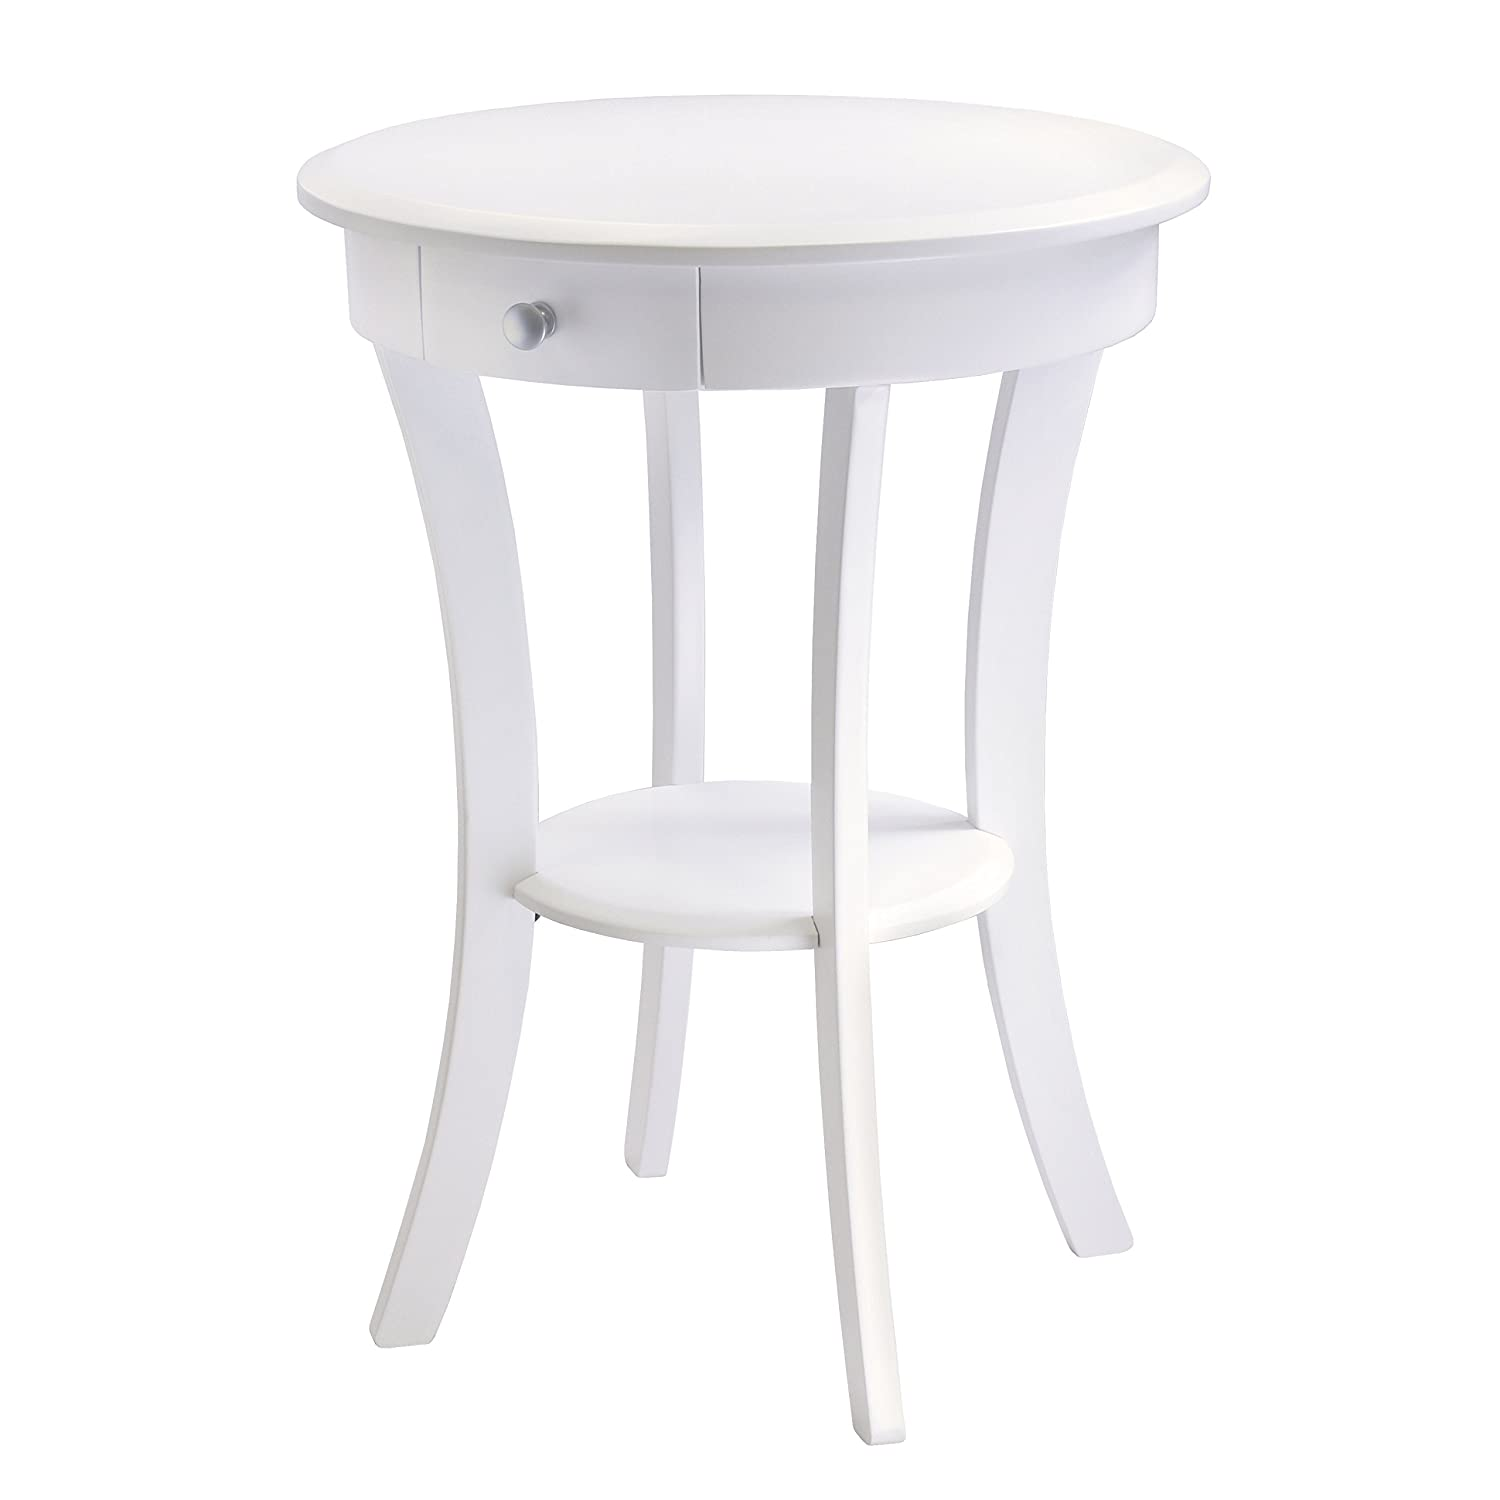 top bang blue table nightstand end up furniture distressed modern creativity white nightstands